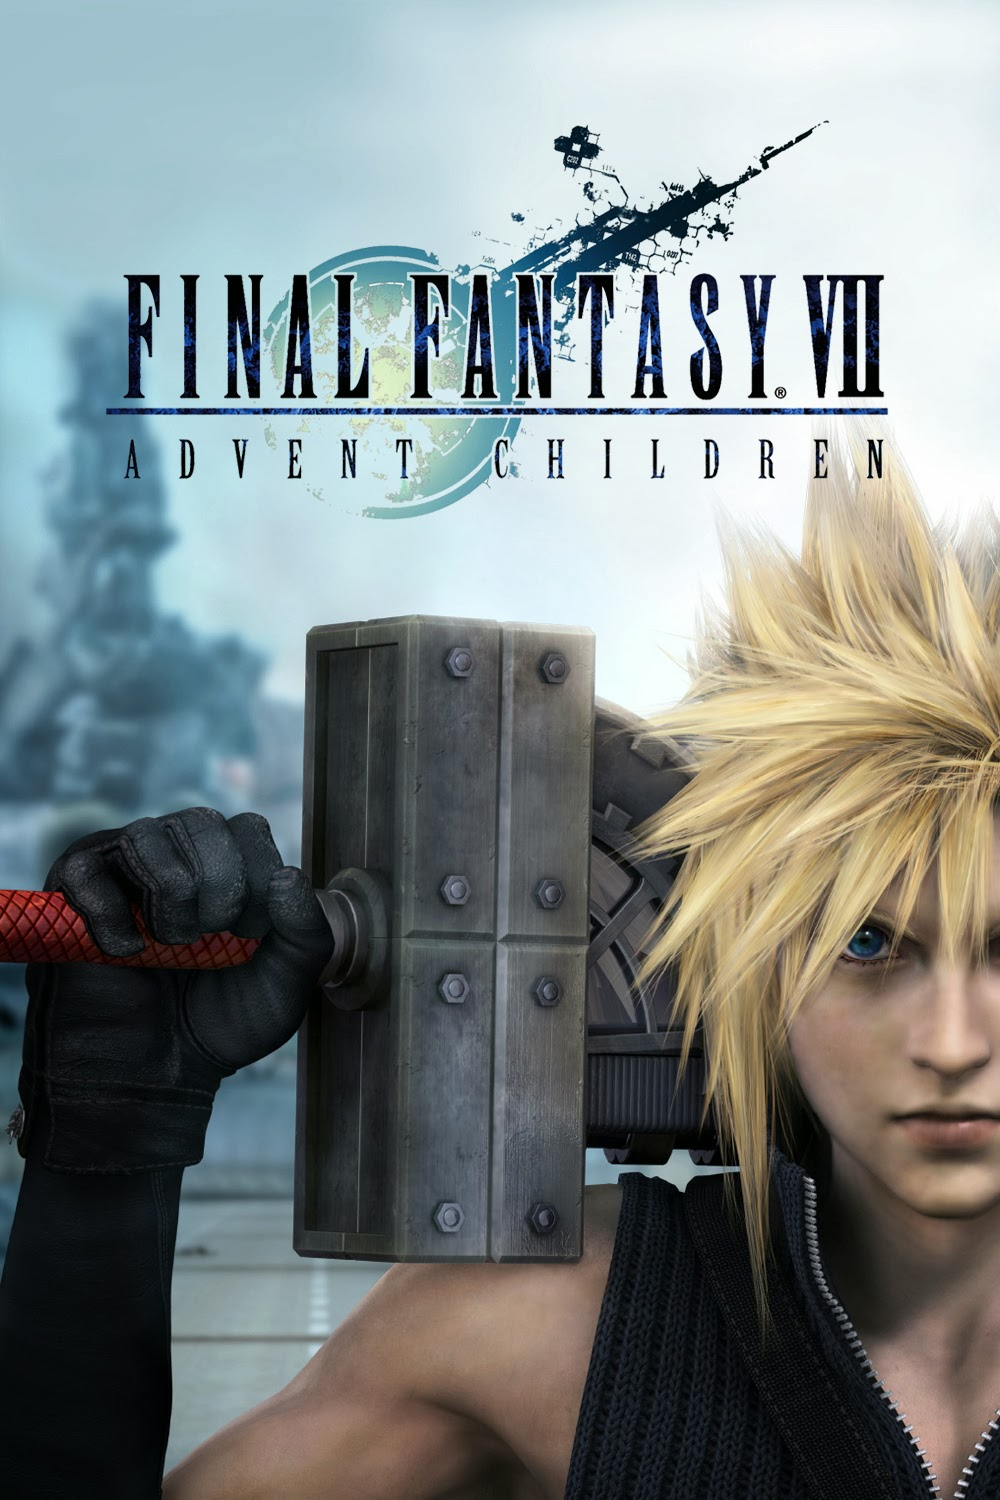 Final Fantasy Vii Advent Children Stream